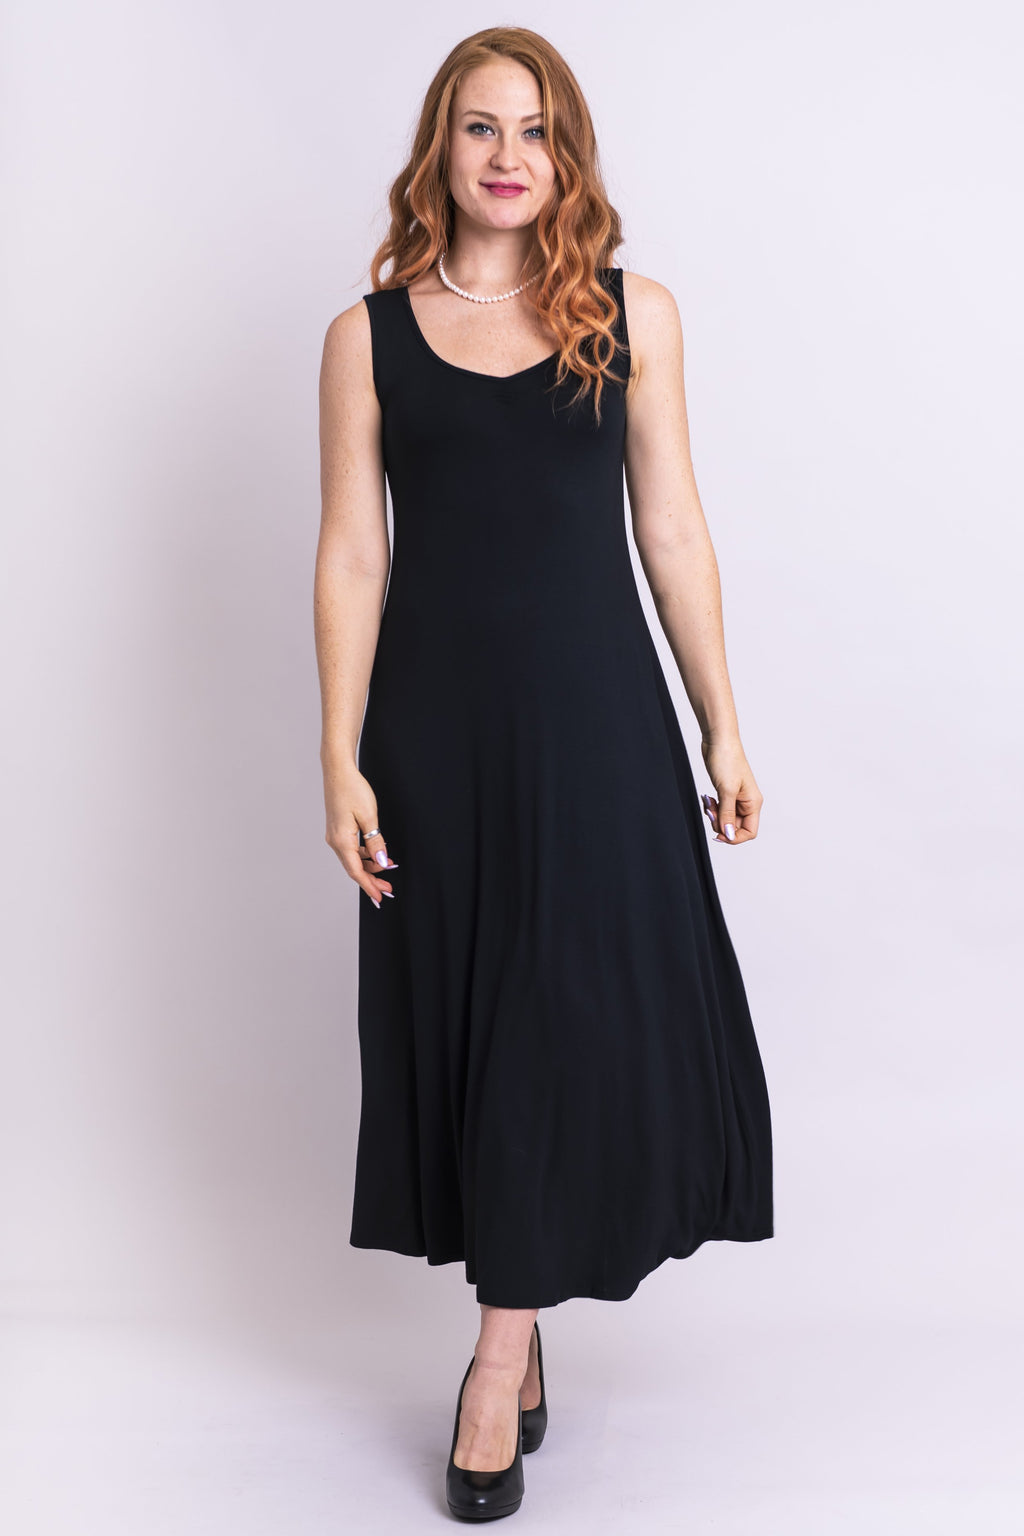 Lanai Dress, Black - Blue Sky Clothing Co